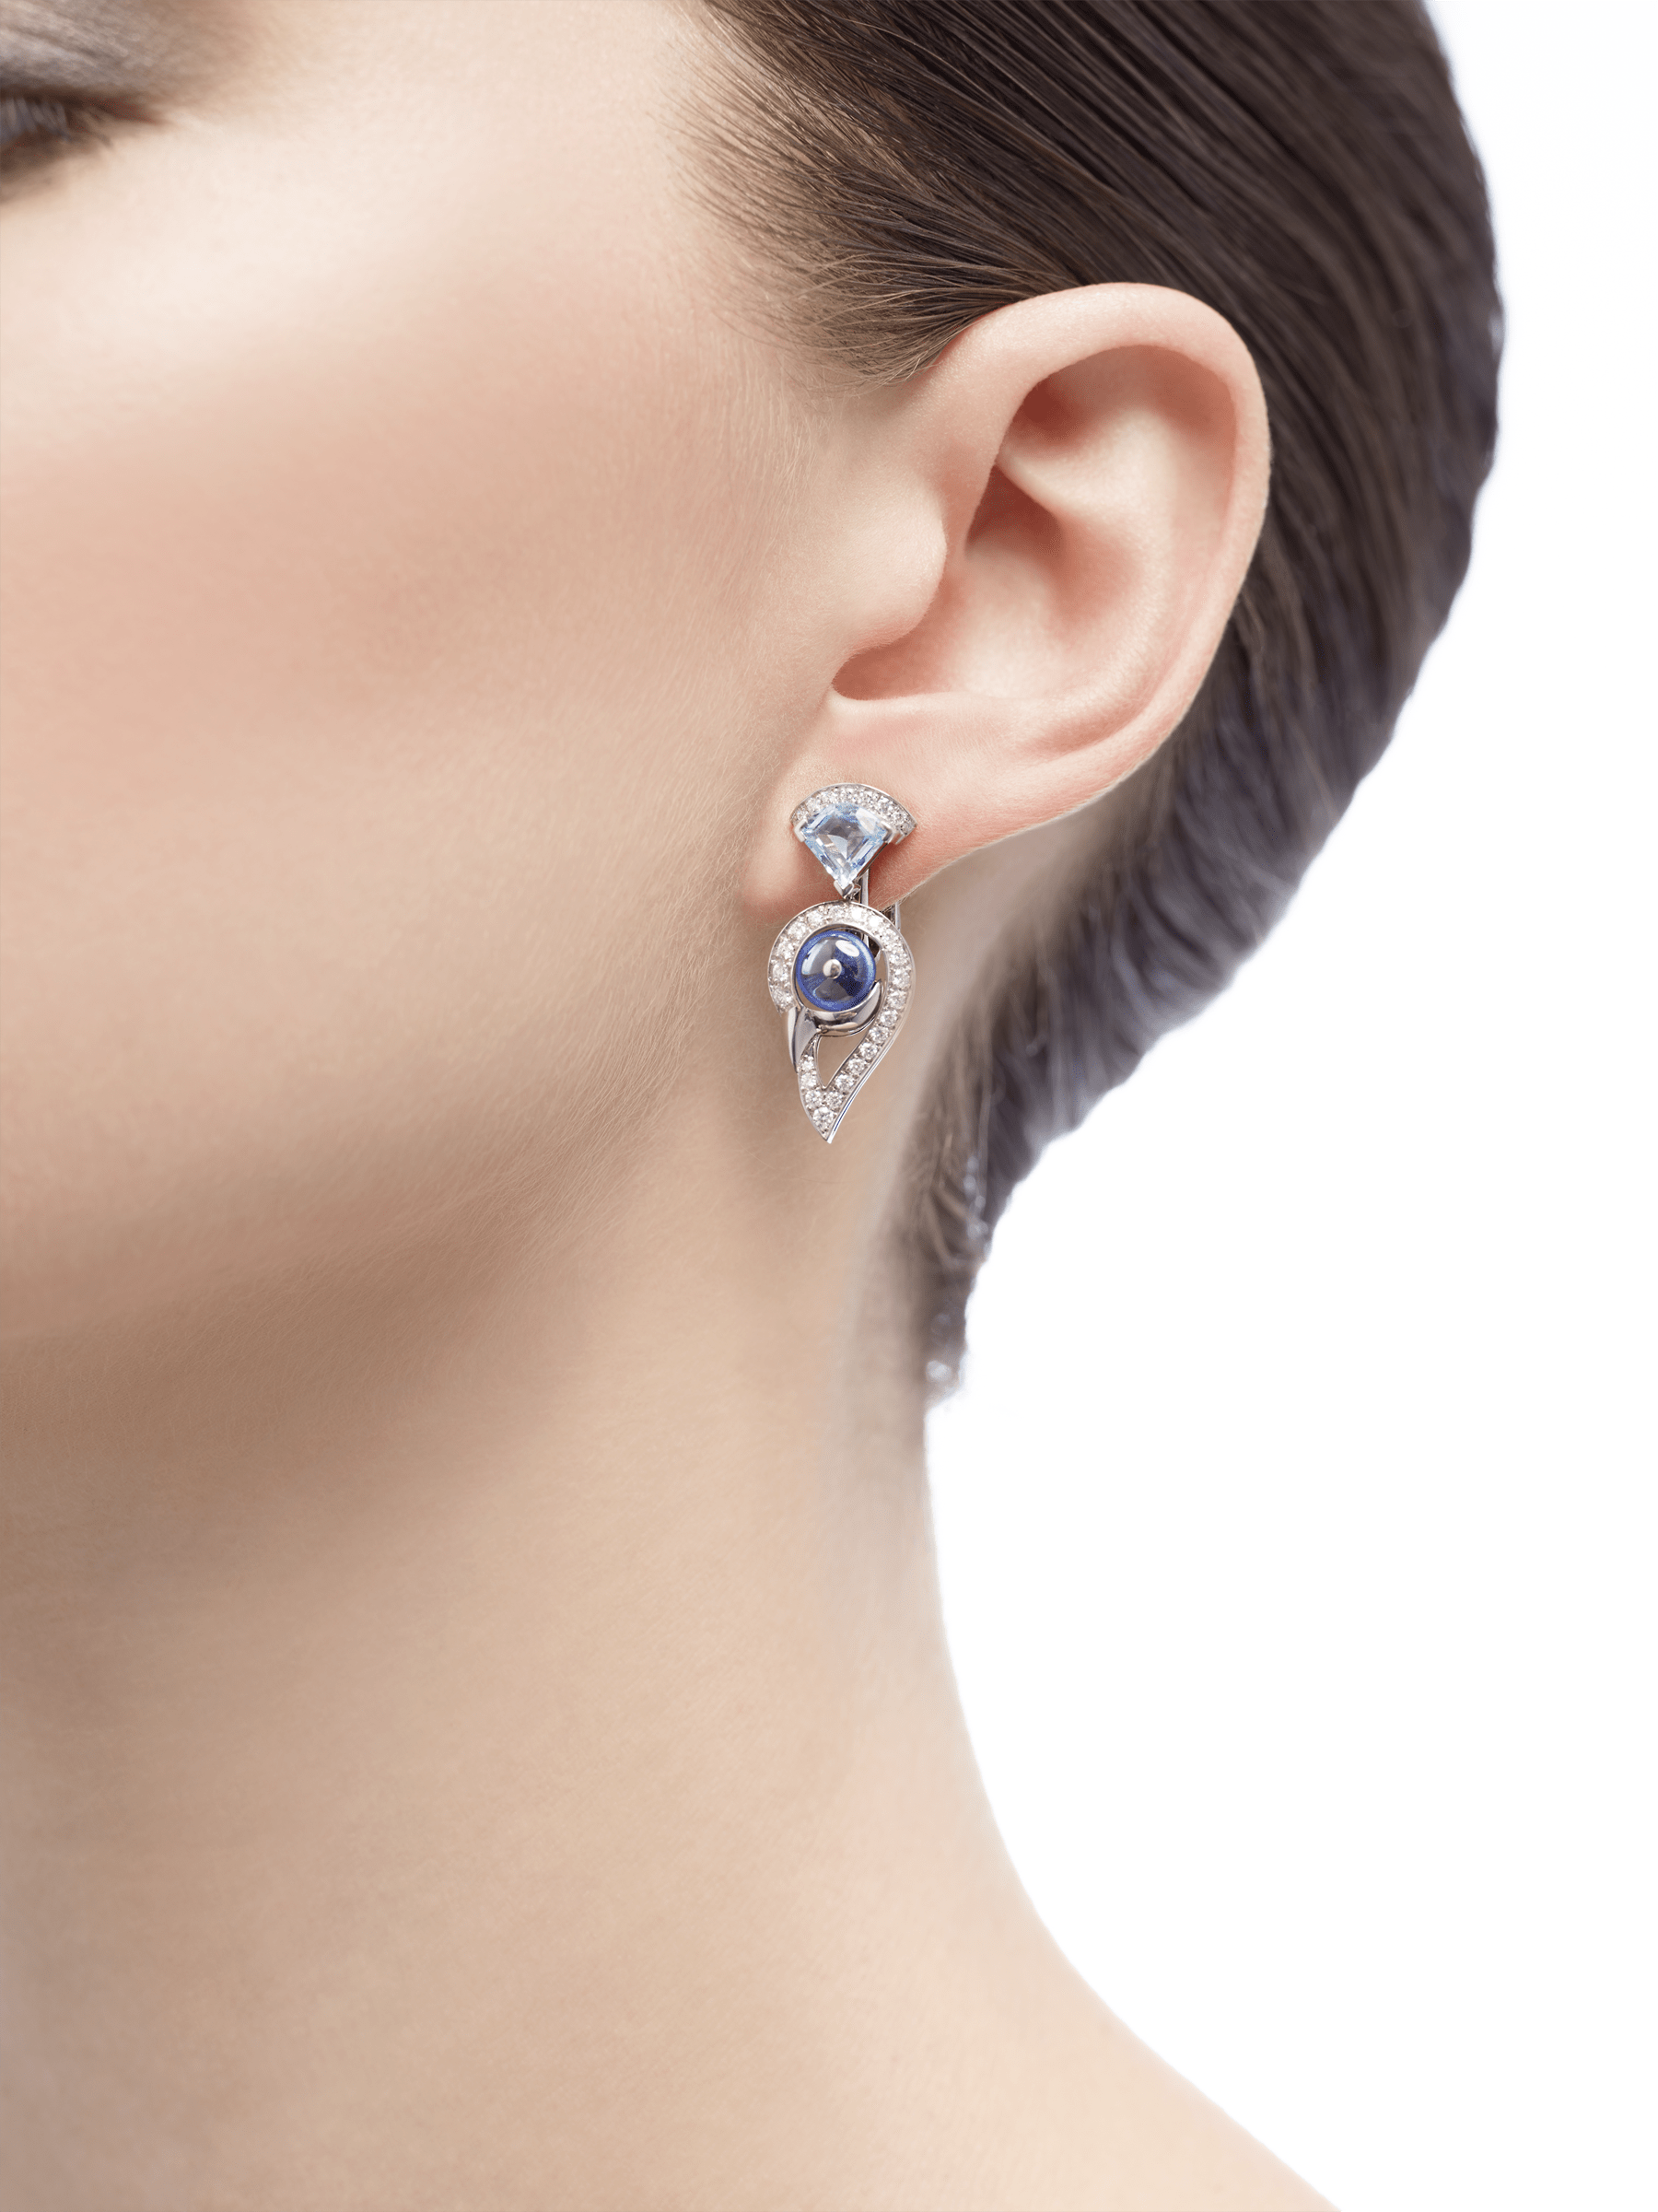 DIVAS' DREAM 18 kt white gold earrings set with coloured gemstones and pavé diamonds 355628 image 4